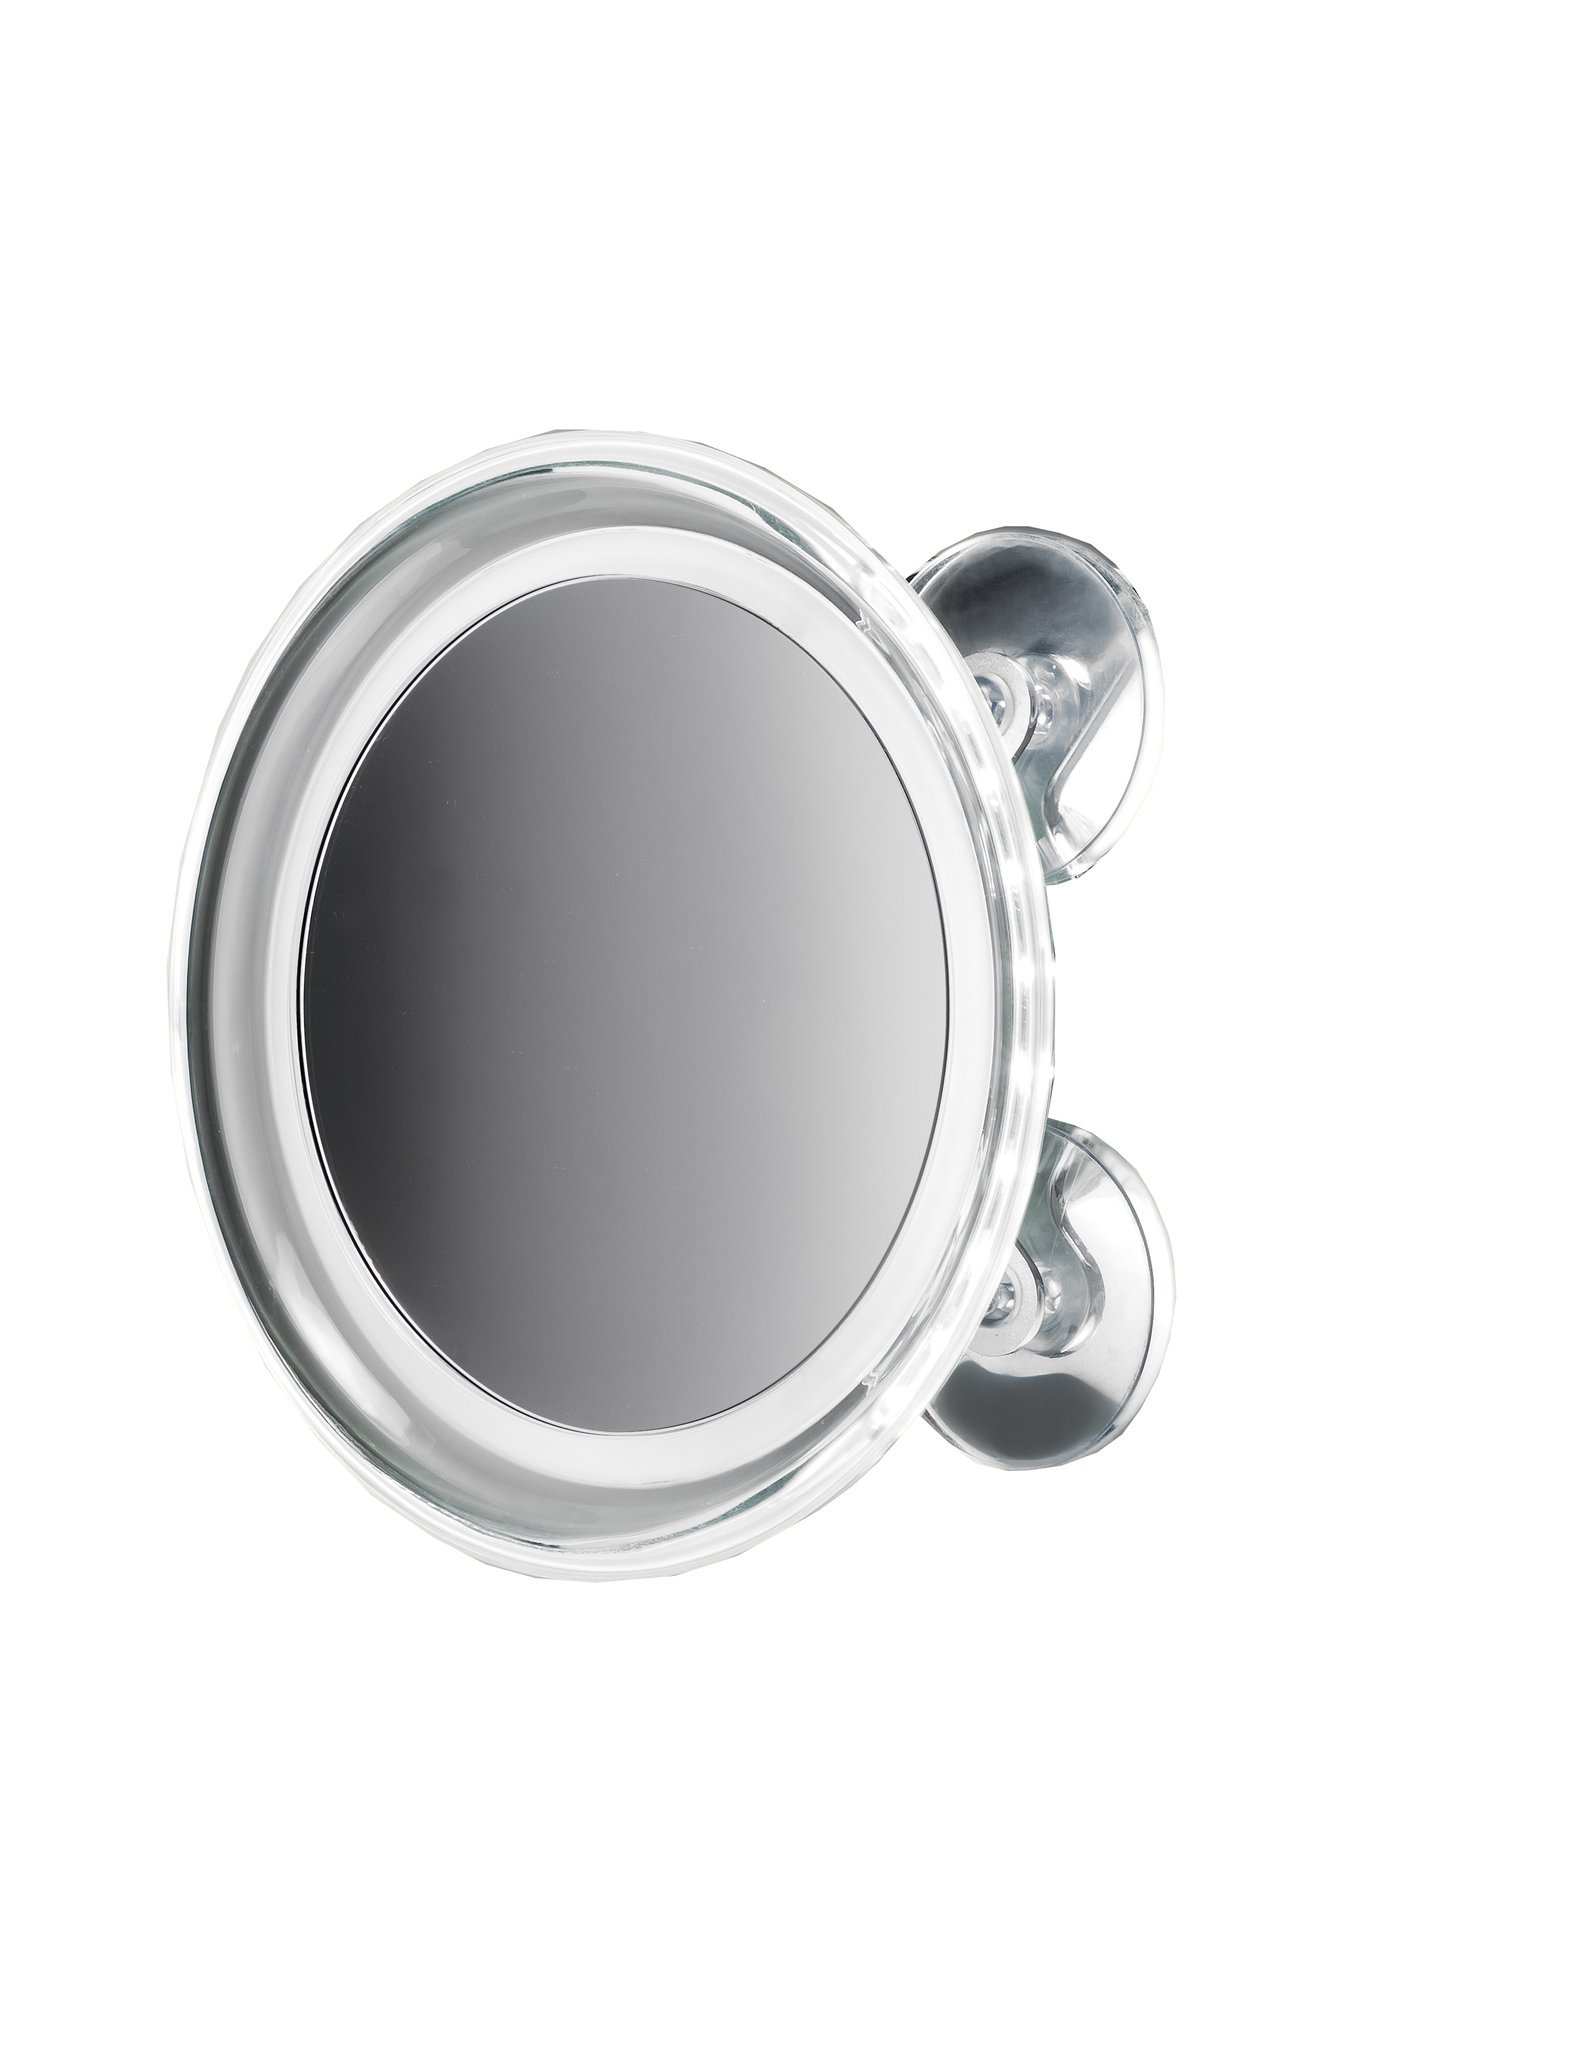 DWBA 8'' Round Suction cup 5x Cosmetic Makeup Magnifying LED light Mirror, Chrome